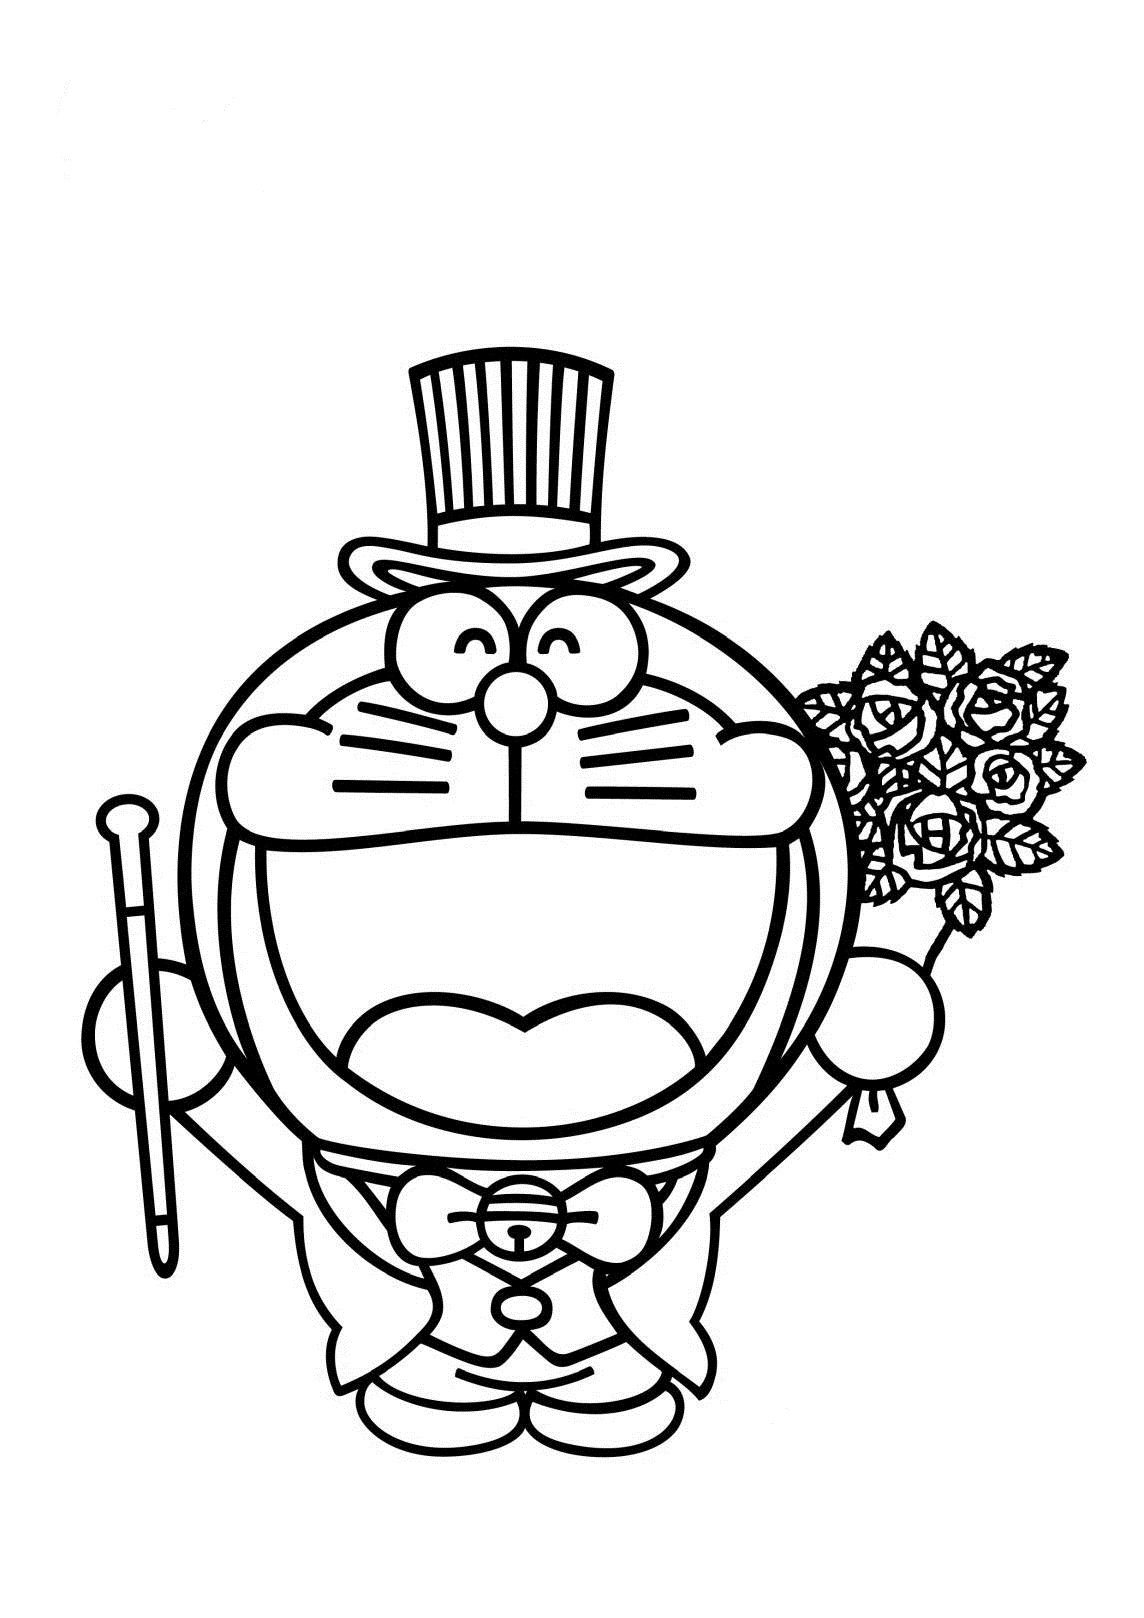 1144x1618 Magician Doraemon Coloring Page Boys Pages Of Kidscoloringpage